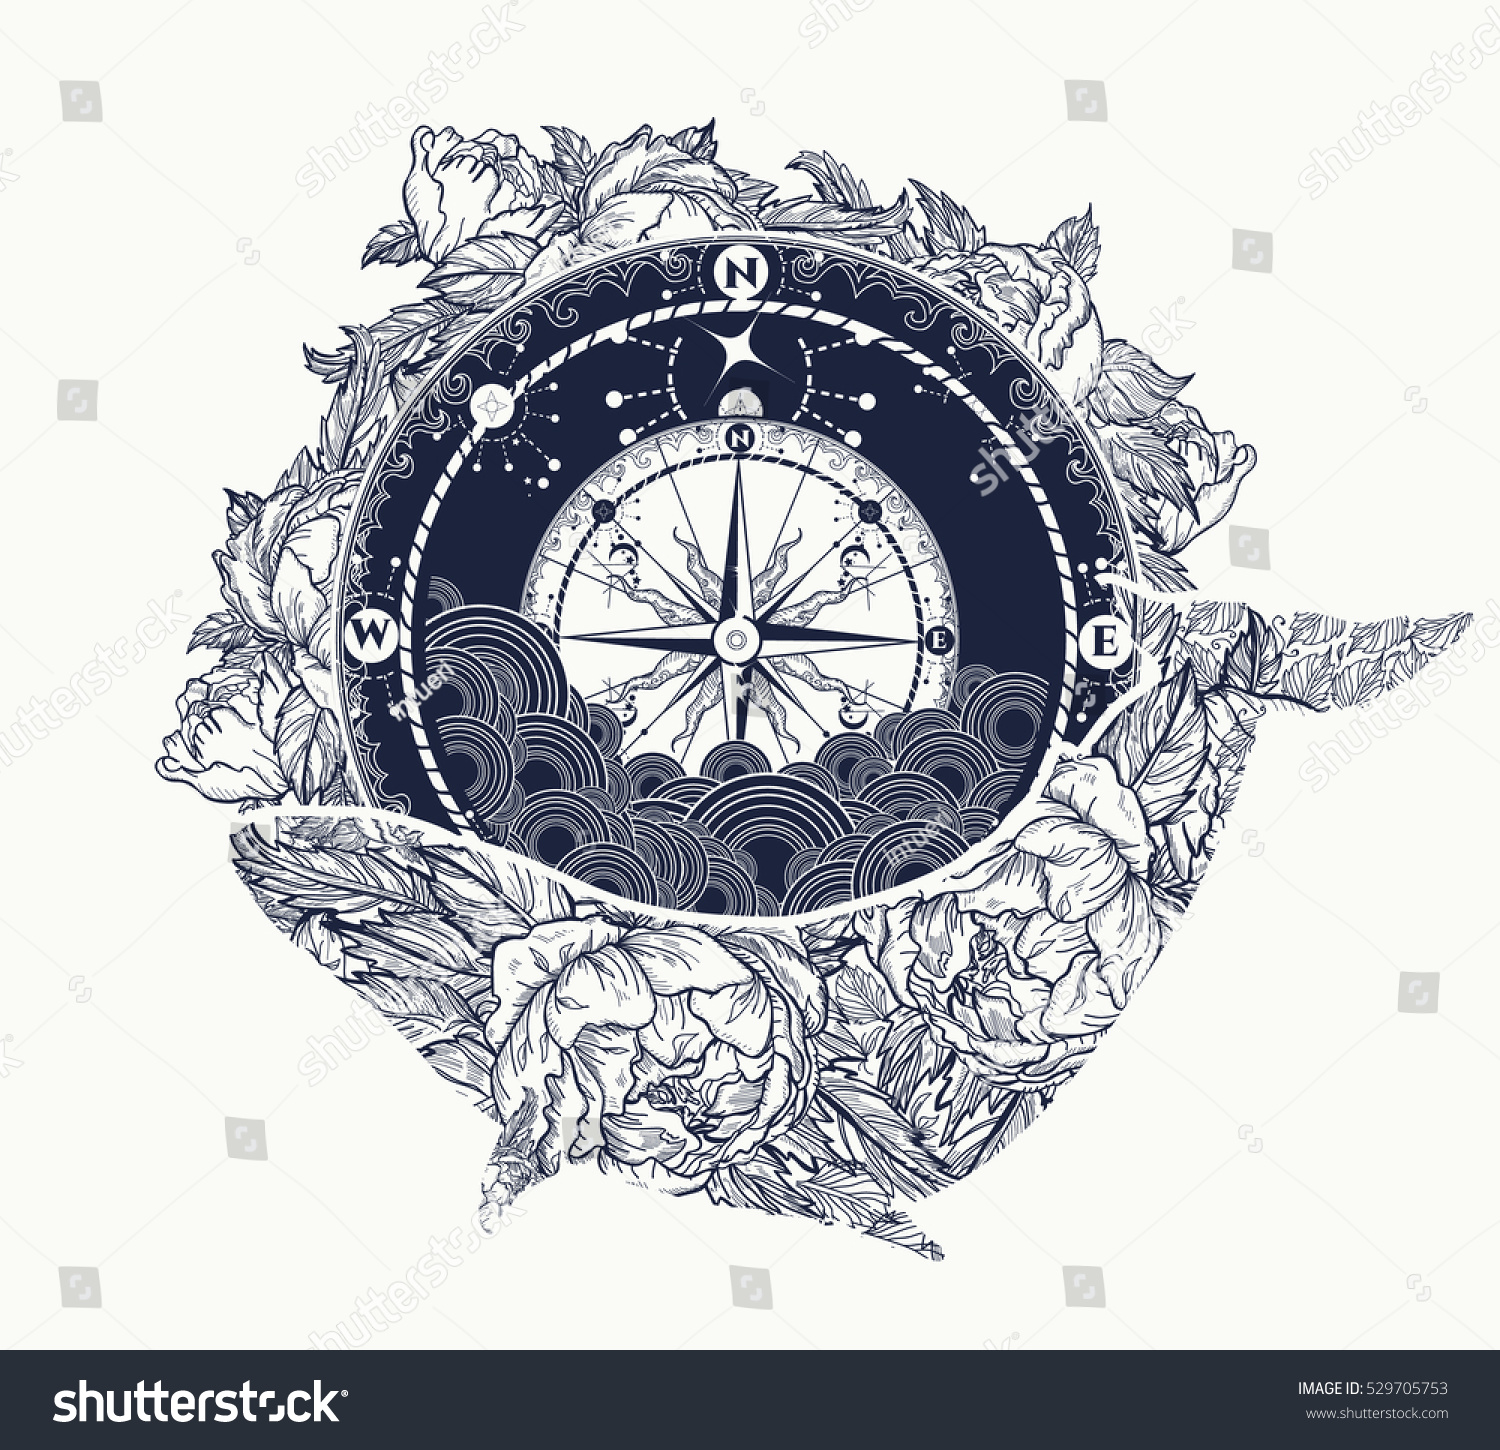 Peony flower isolated on white stock vector 368014568 shutterstock -  6 Compass Floral Whale Tattoo Art Stock Vector 529705753 Shutterstock